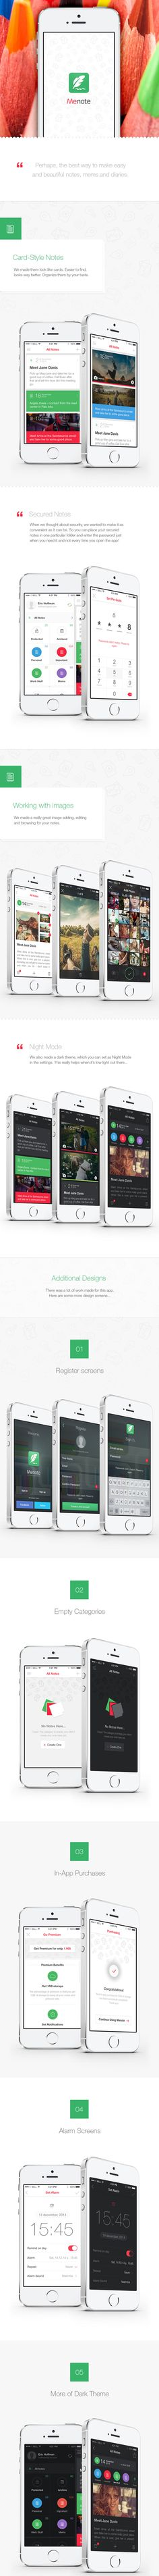 Daily Mobile UI Design Inspiration #352